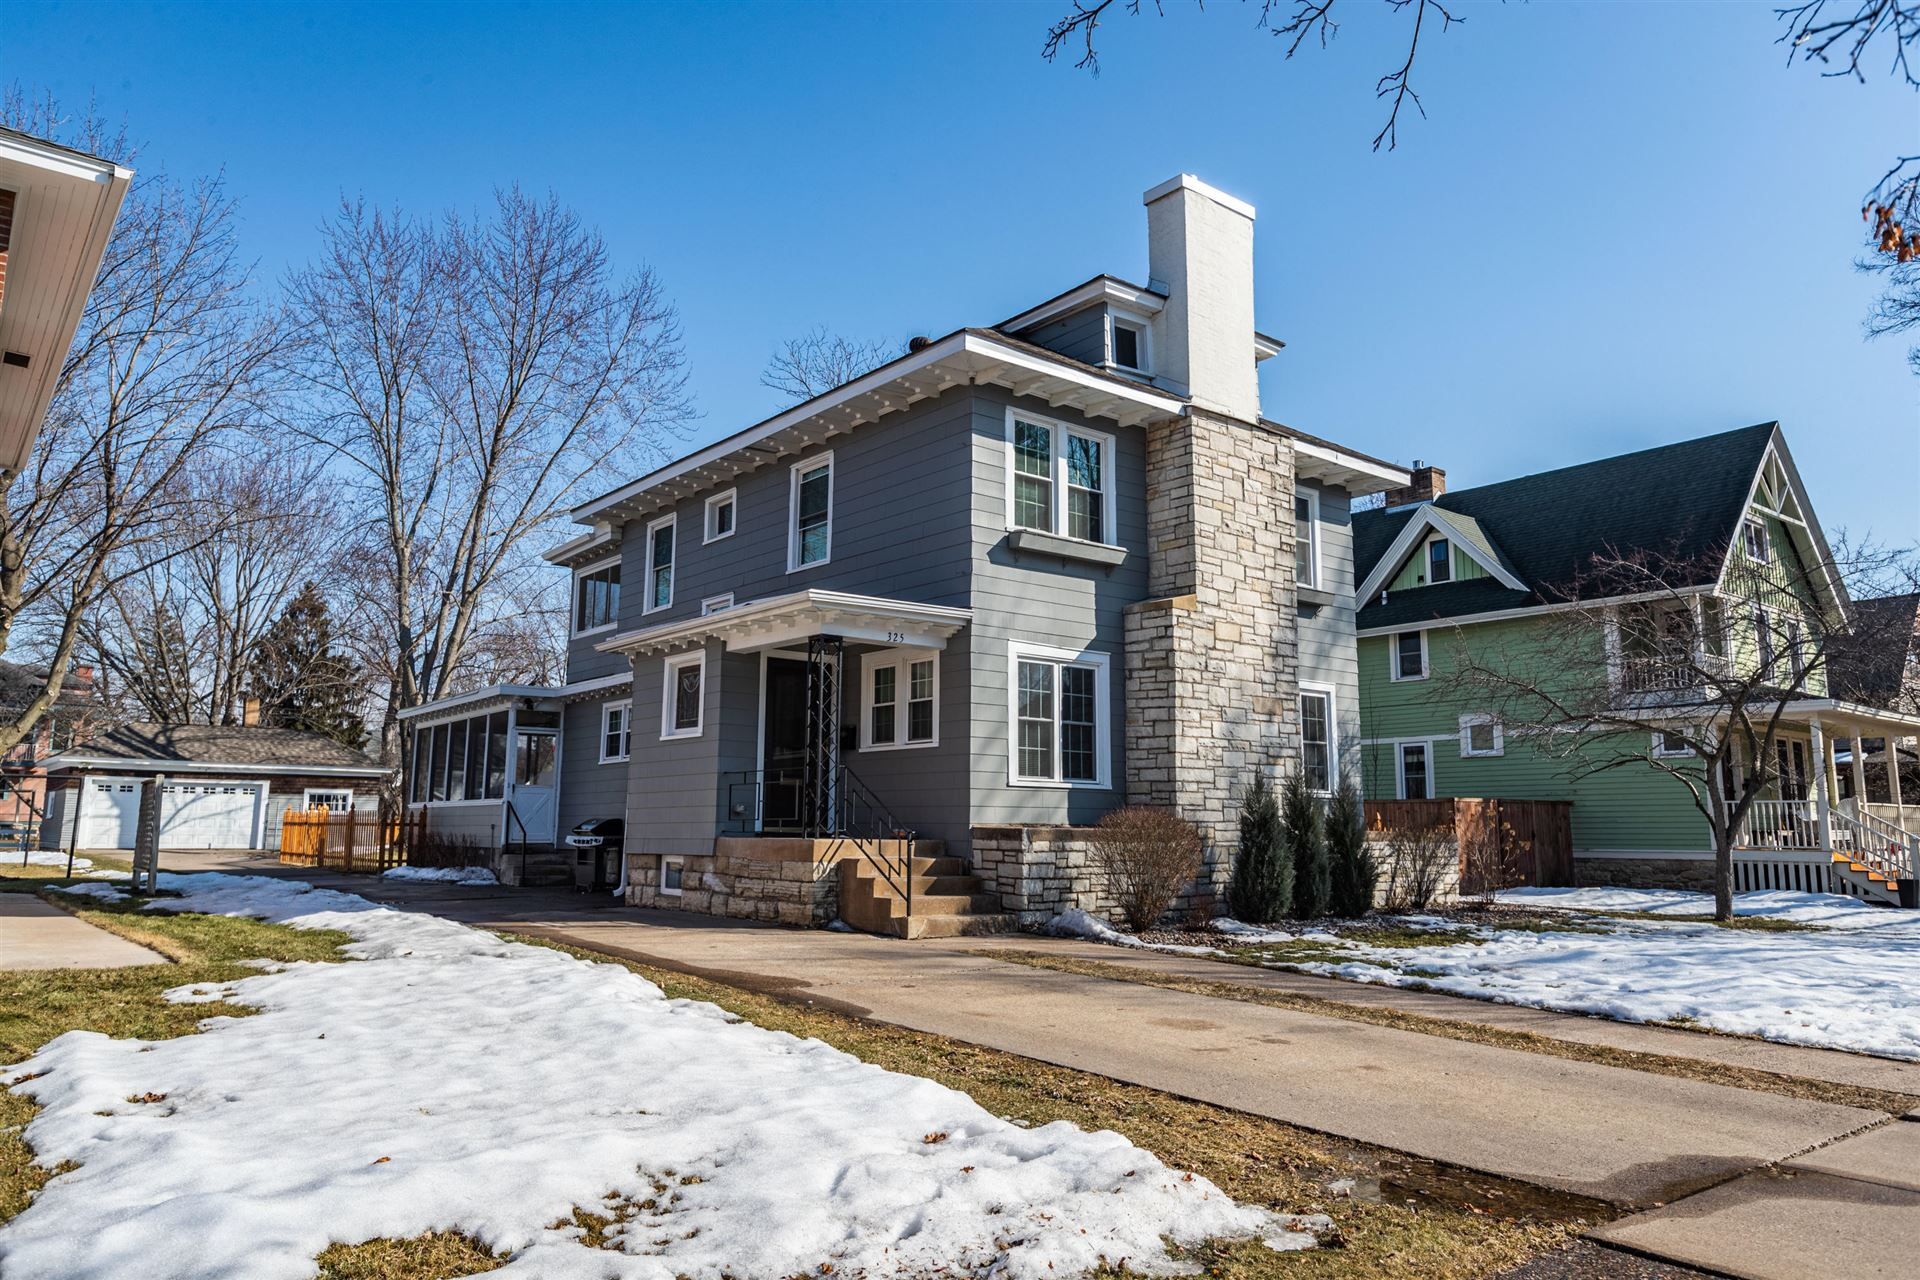 325 14th St S, La Crosse, WI 54601 - MLS#: 1729671